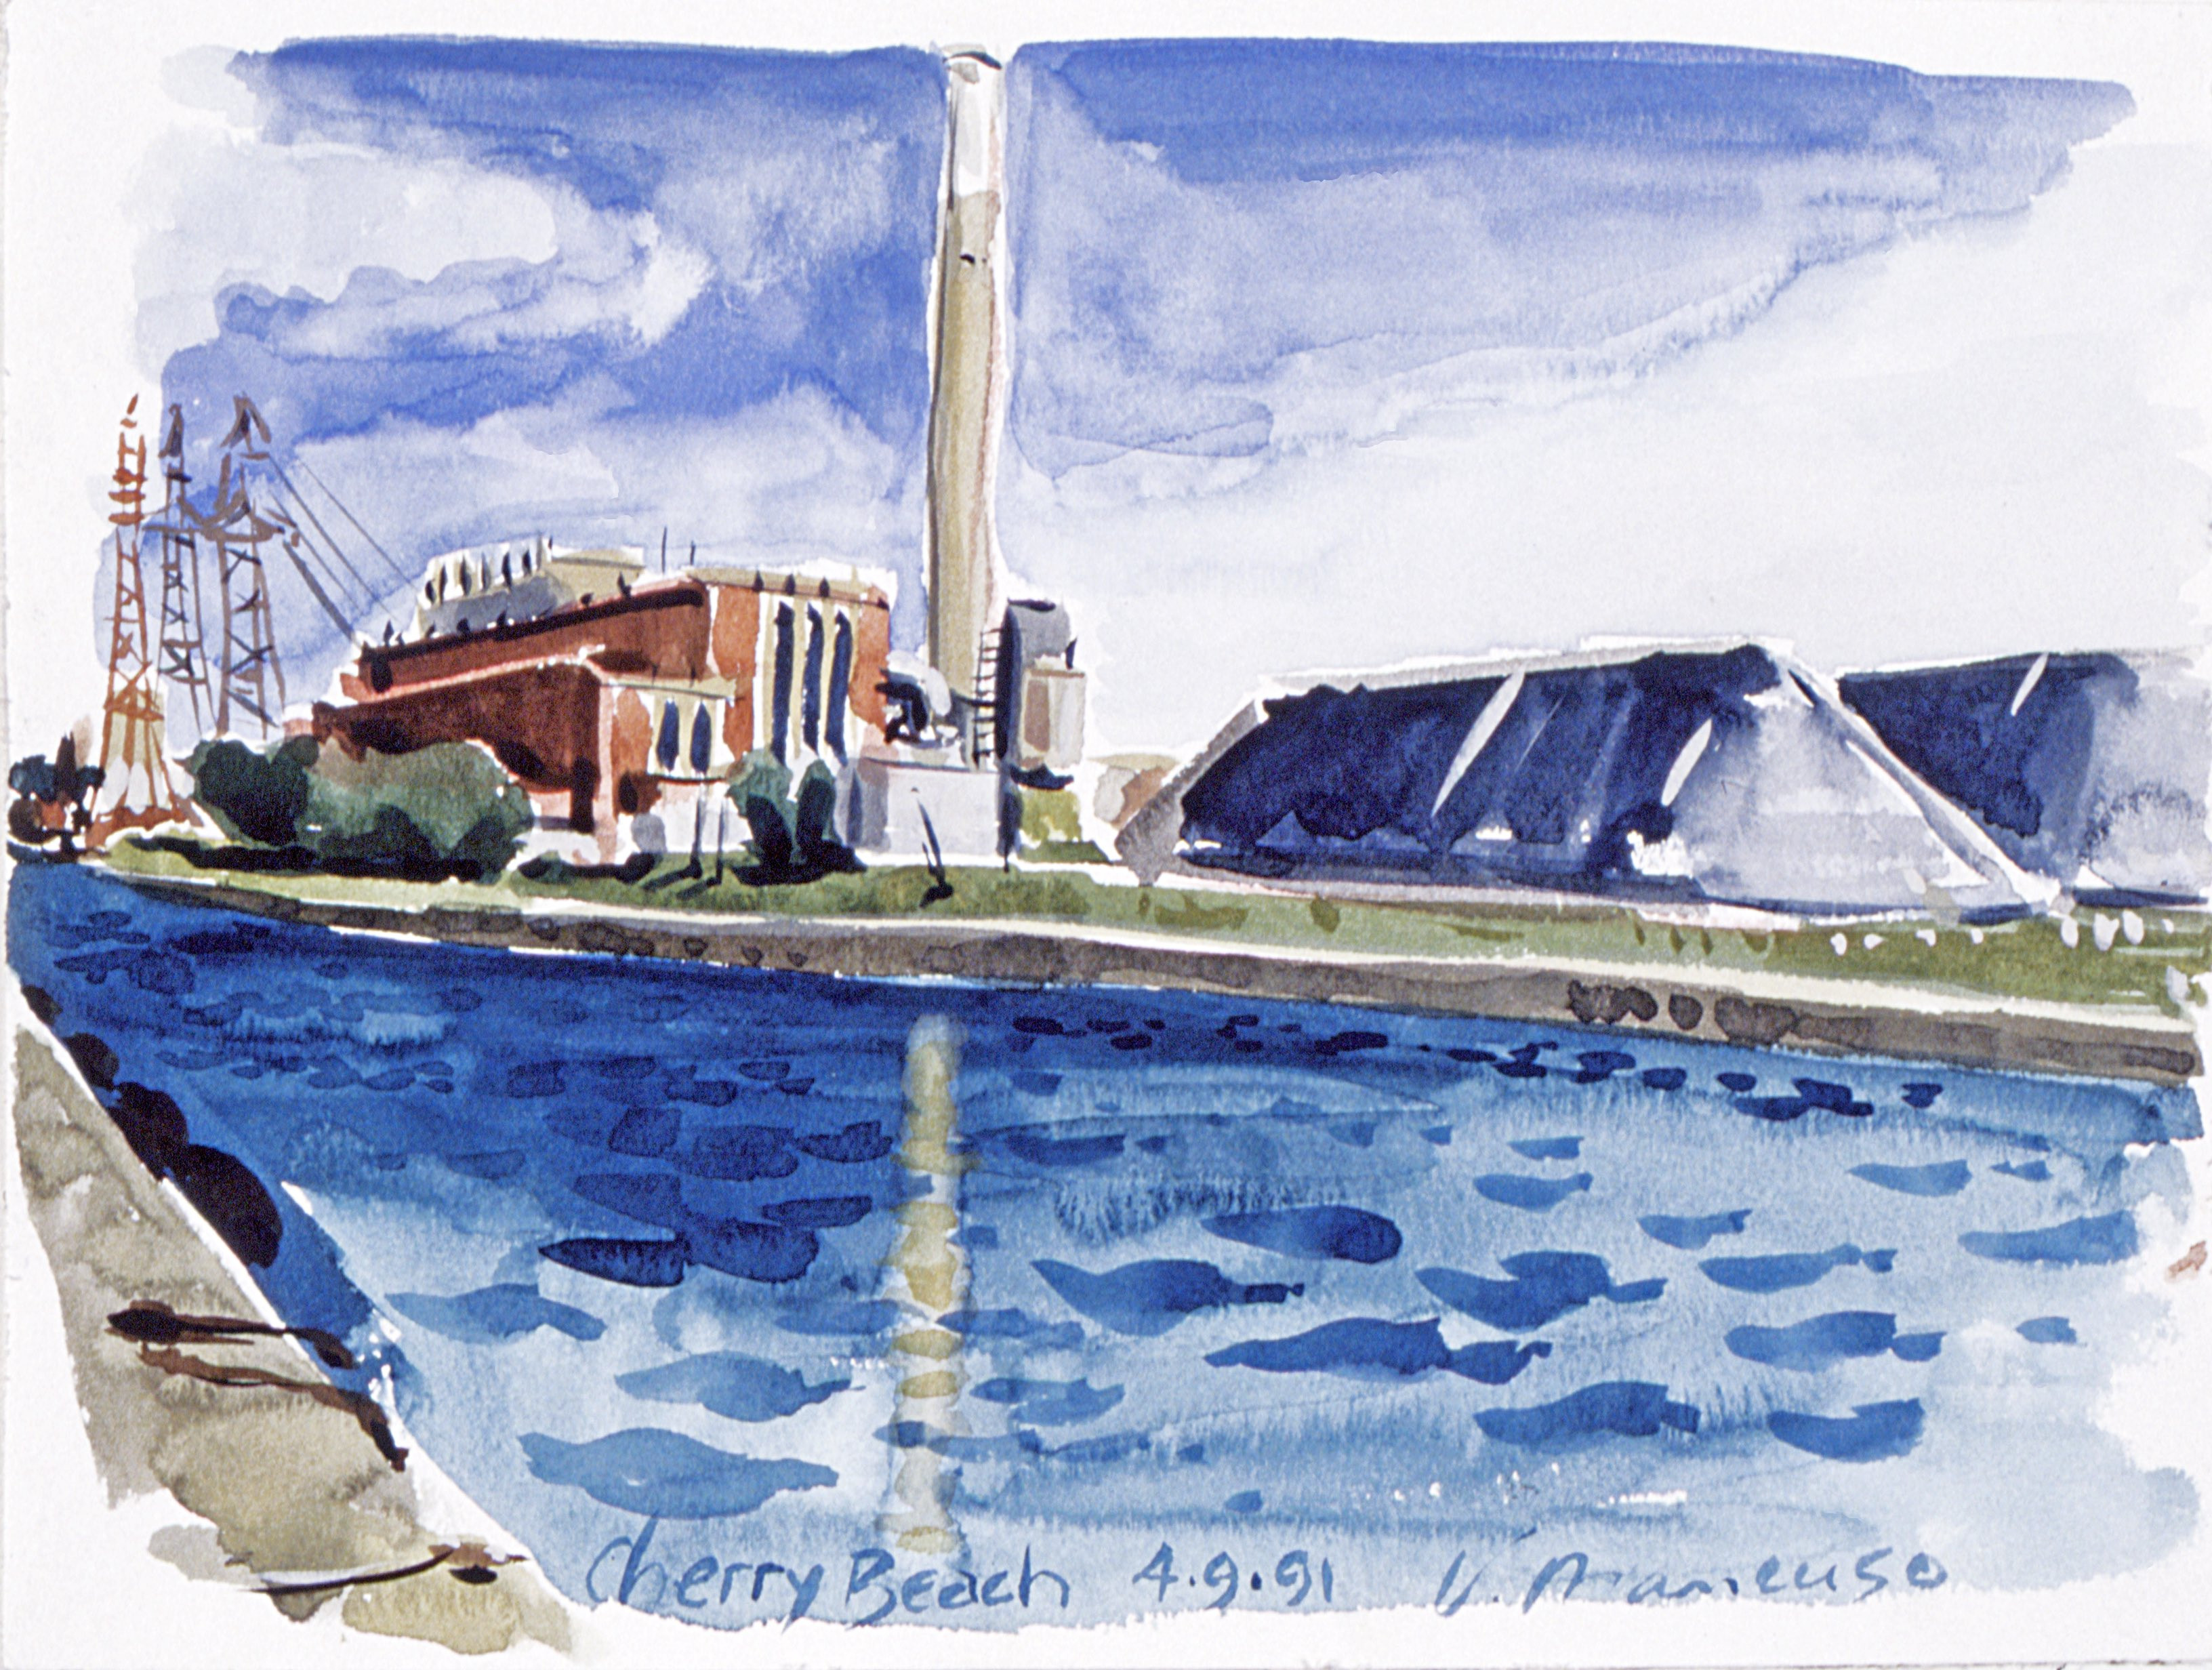 Cherry Beach, Toronto, 9x12 inch water colour is part of the permanent collection of the Toronto Historical Board, Marine Museum.